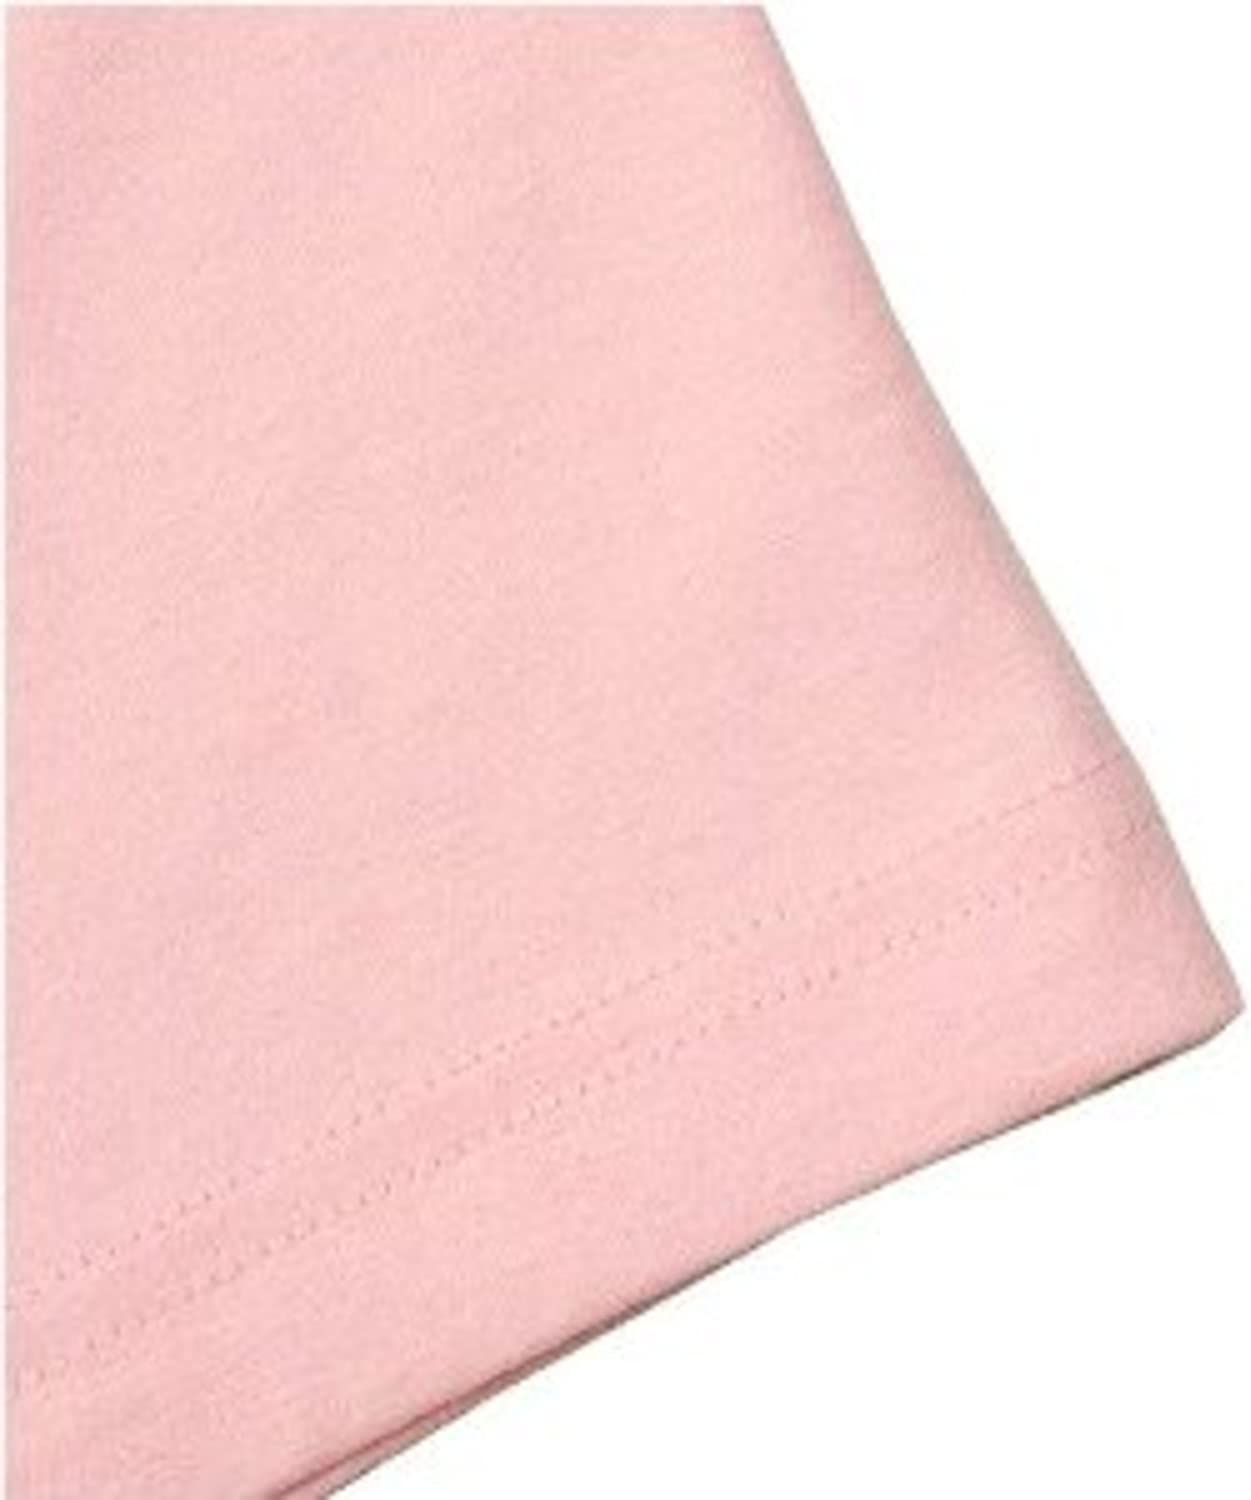 RMC Jeans Sumo Pink T-Shirt REDM6400